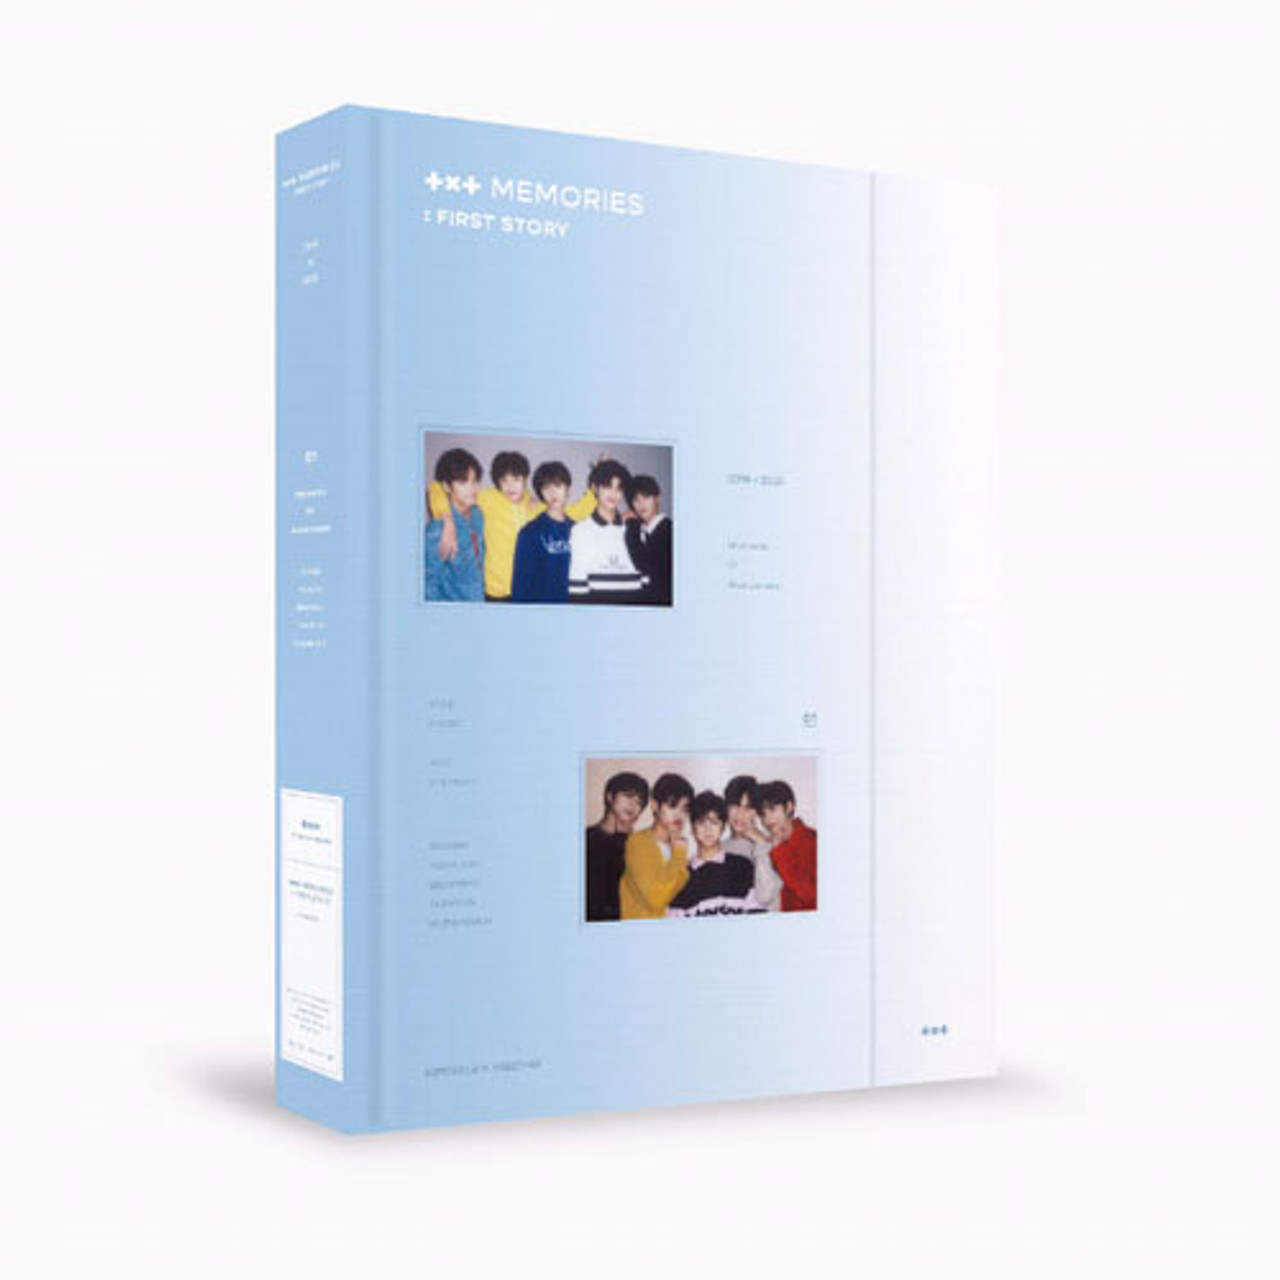 TXT - MEMORIES : FIRST STORY